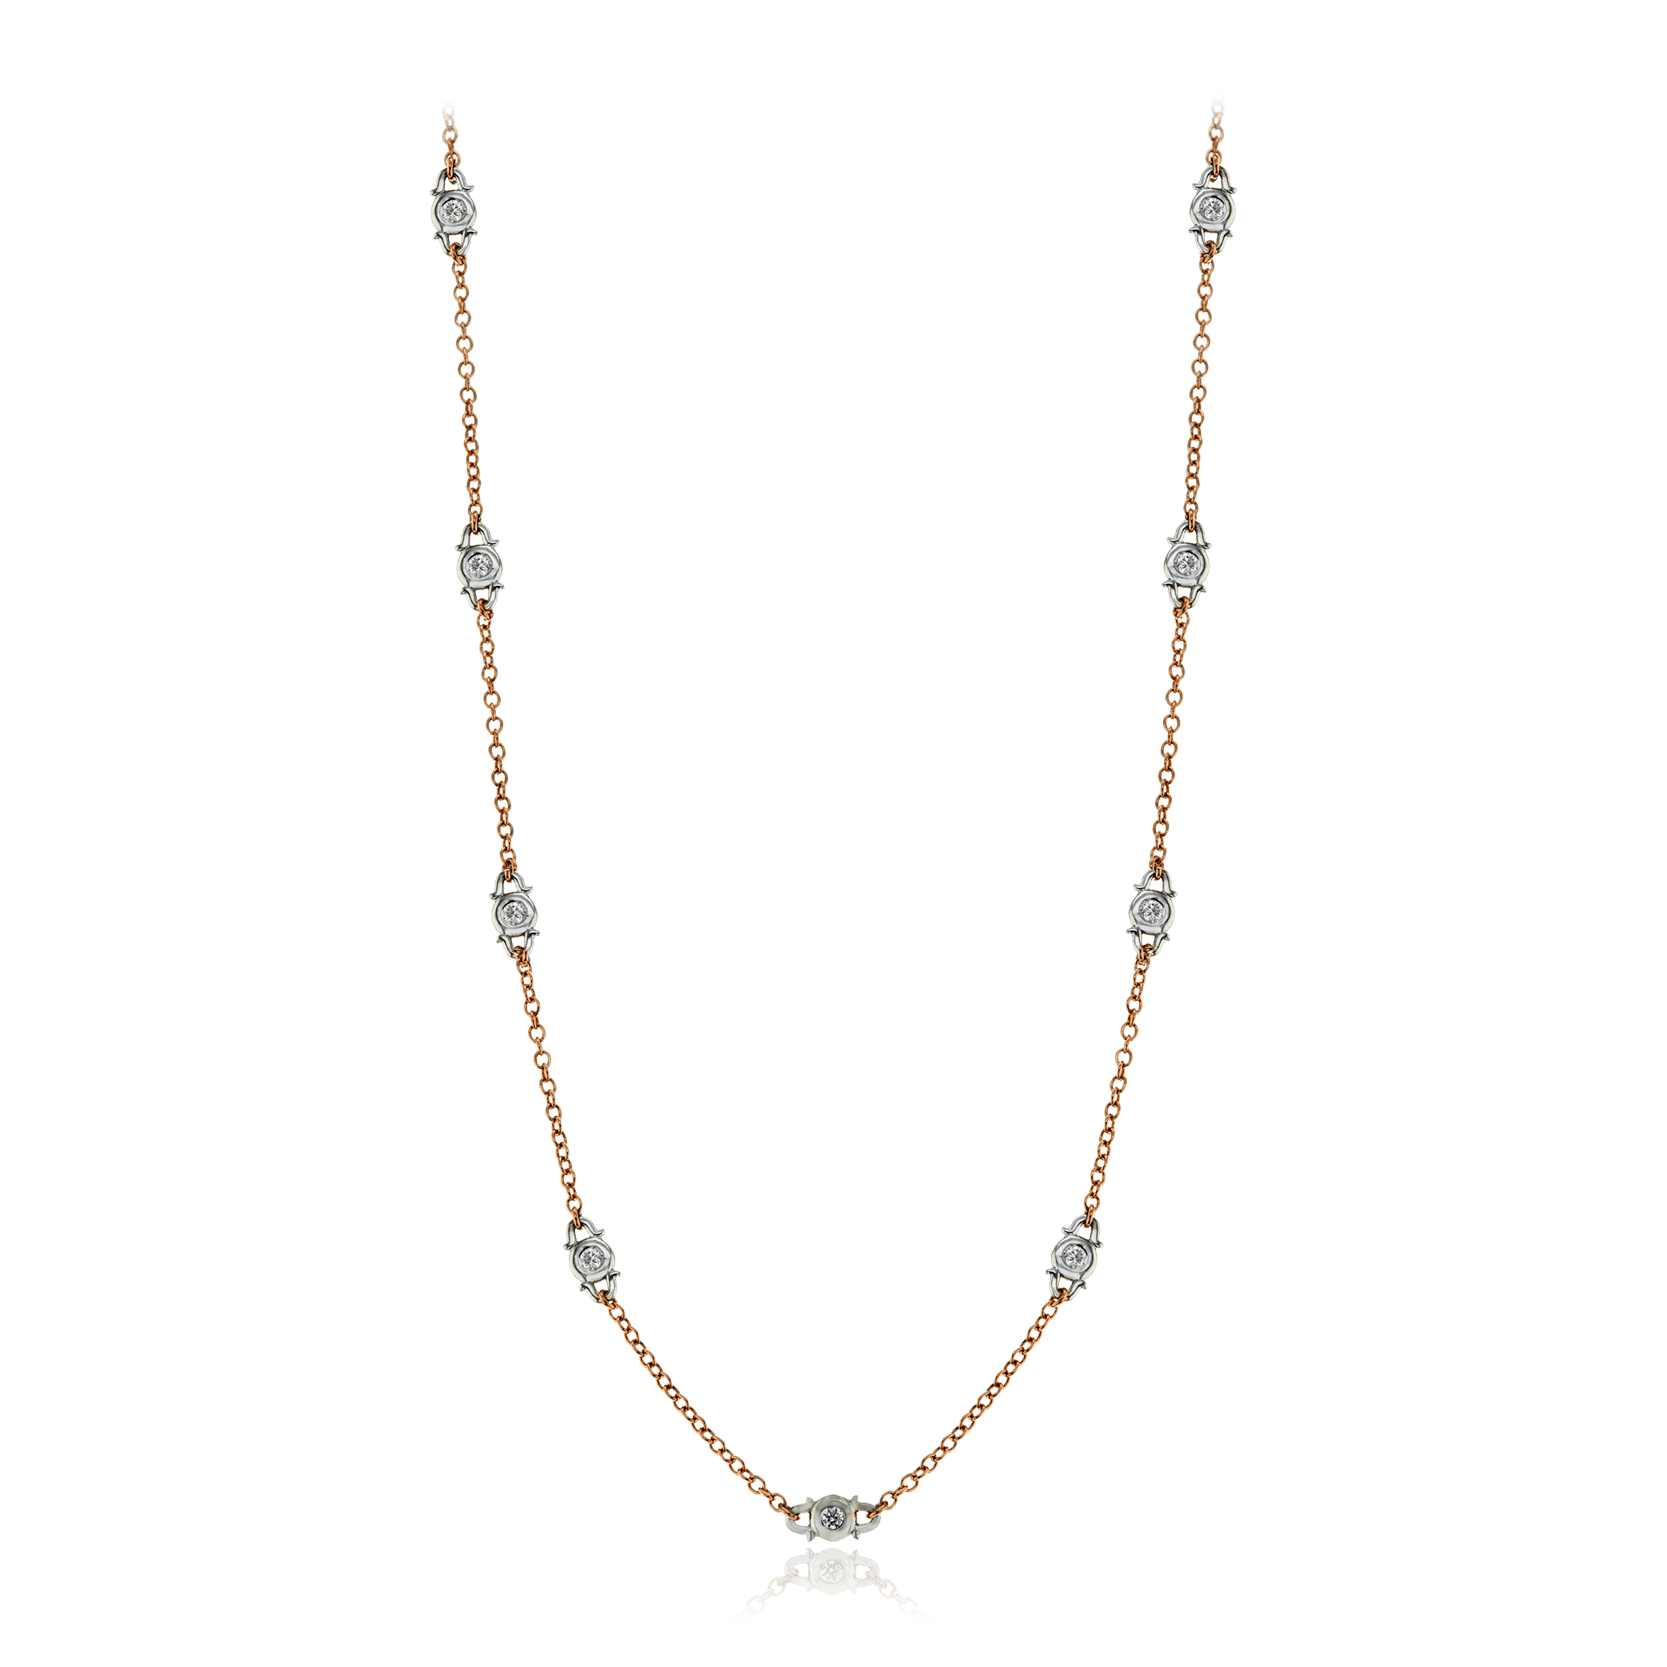 CH113 NECKLACE